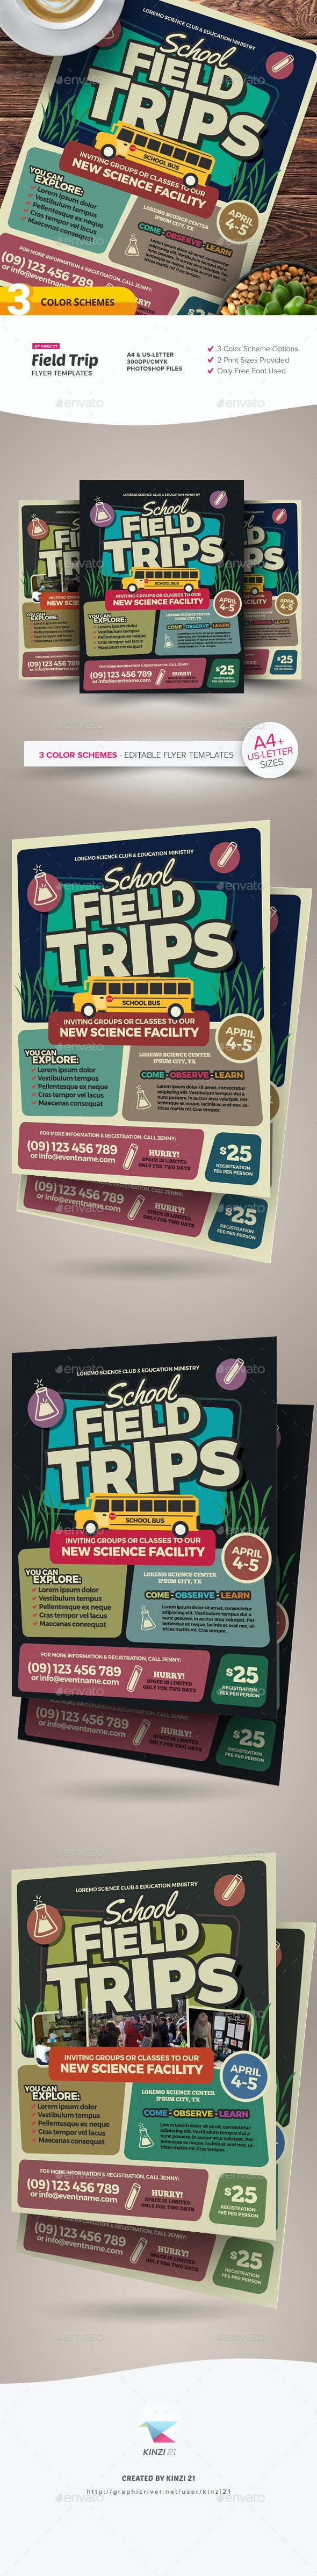 Field Trip Flyer Templates